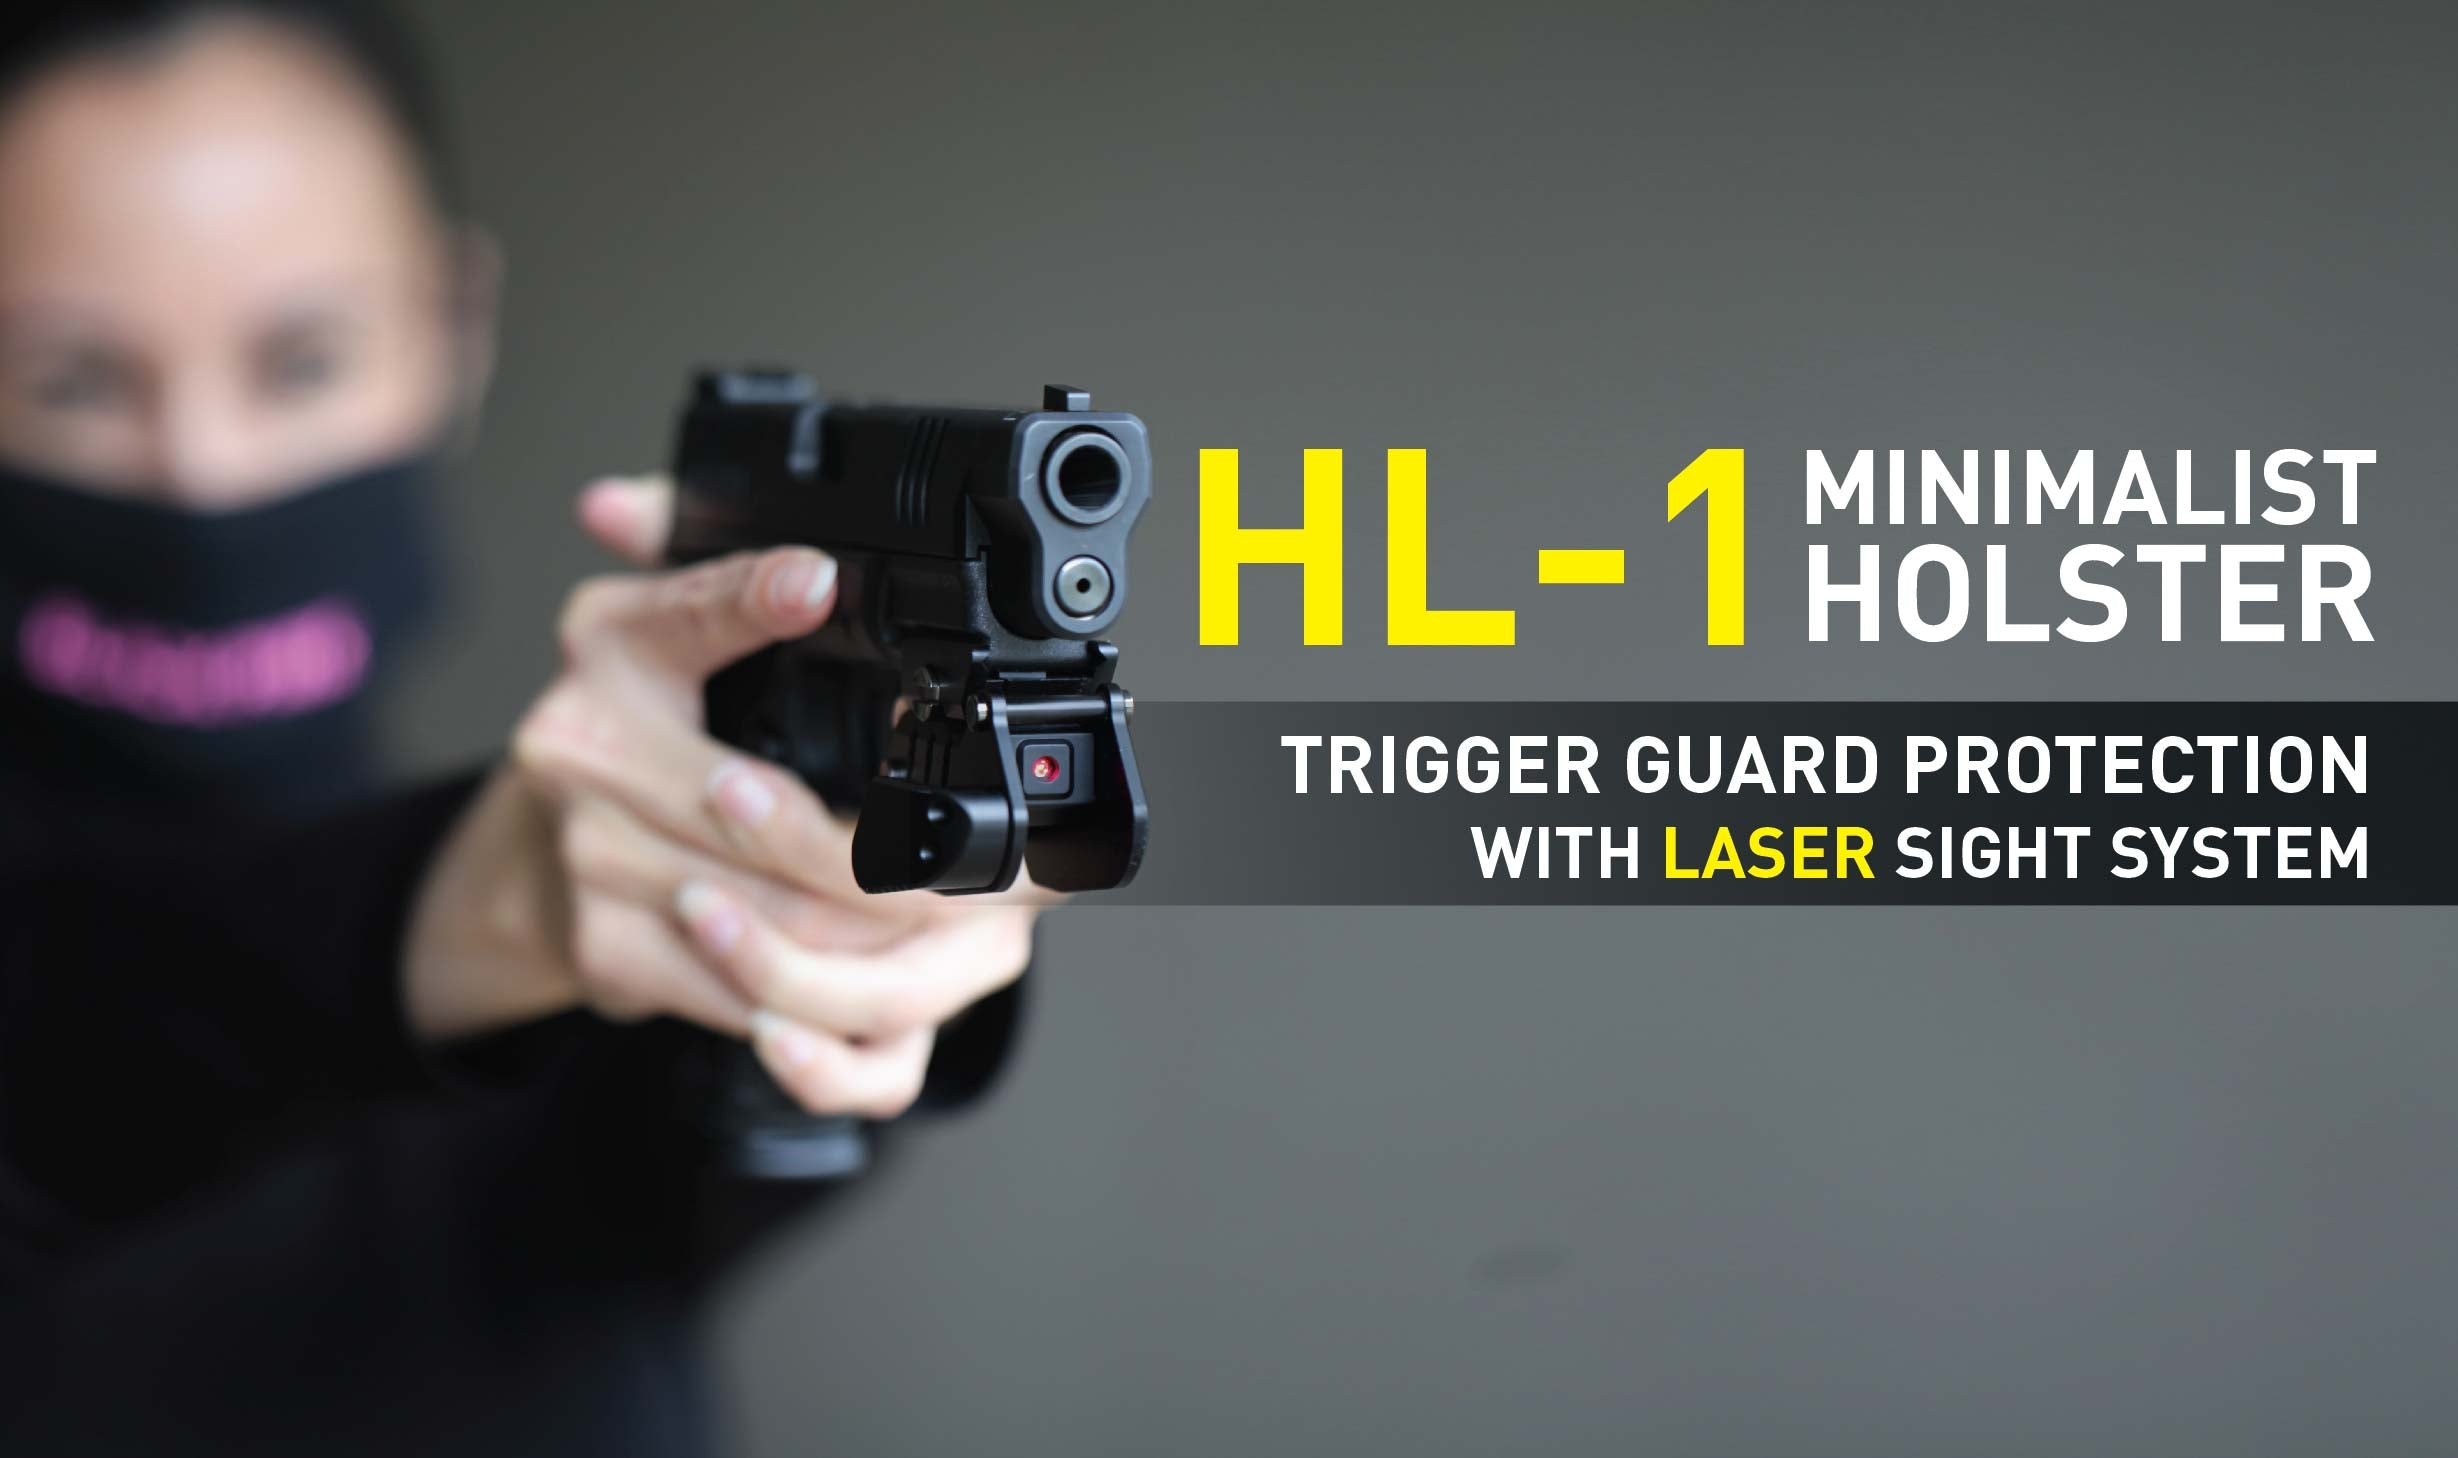 Stinger HL-1 Concealment w/ Red Laser Sight System: Trigger Guard Protection, Belt Clip Minimalist Carry Holster